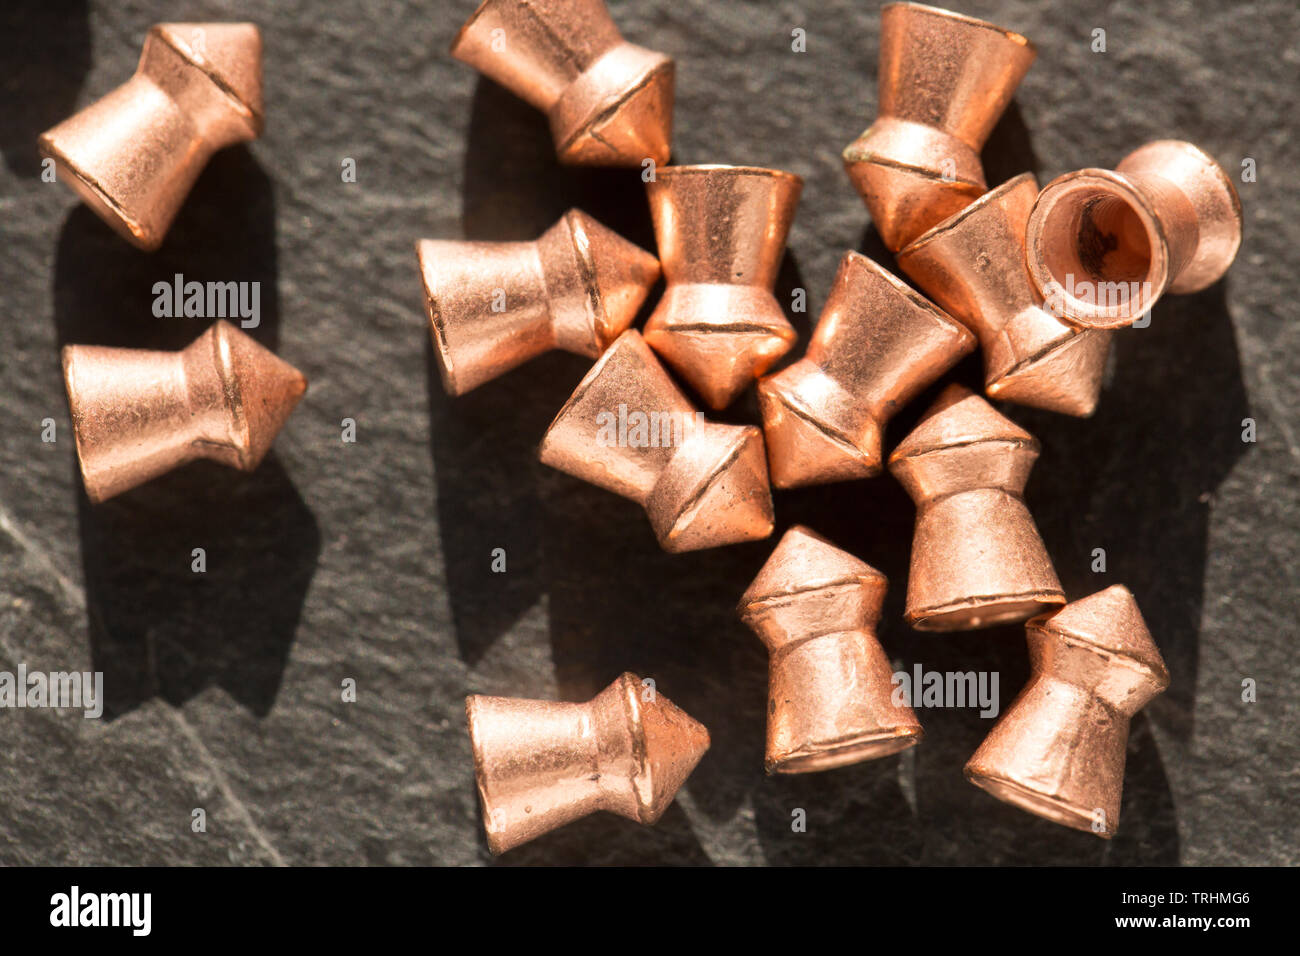 Copper-coated lead .22 calibre airgun pellets on a dark stone background that can be used in either airguns or air pistols. England UK GB - Stock Image